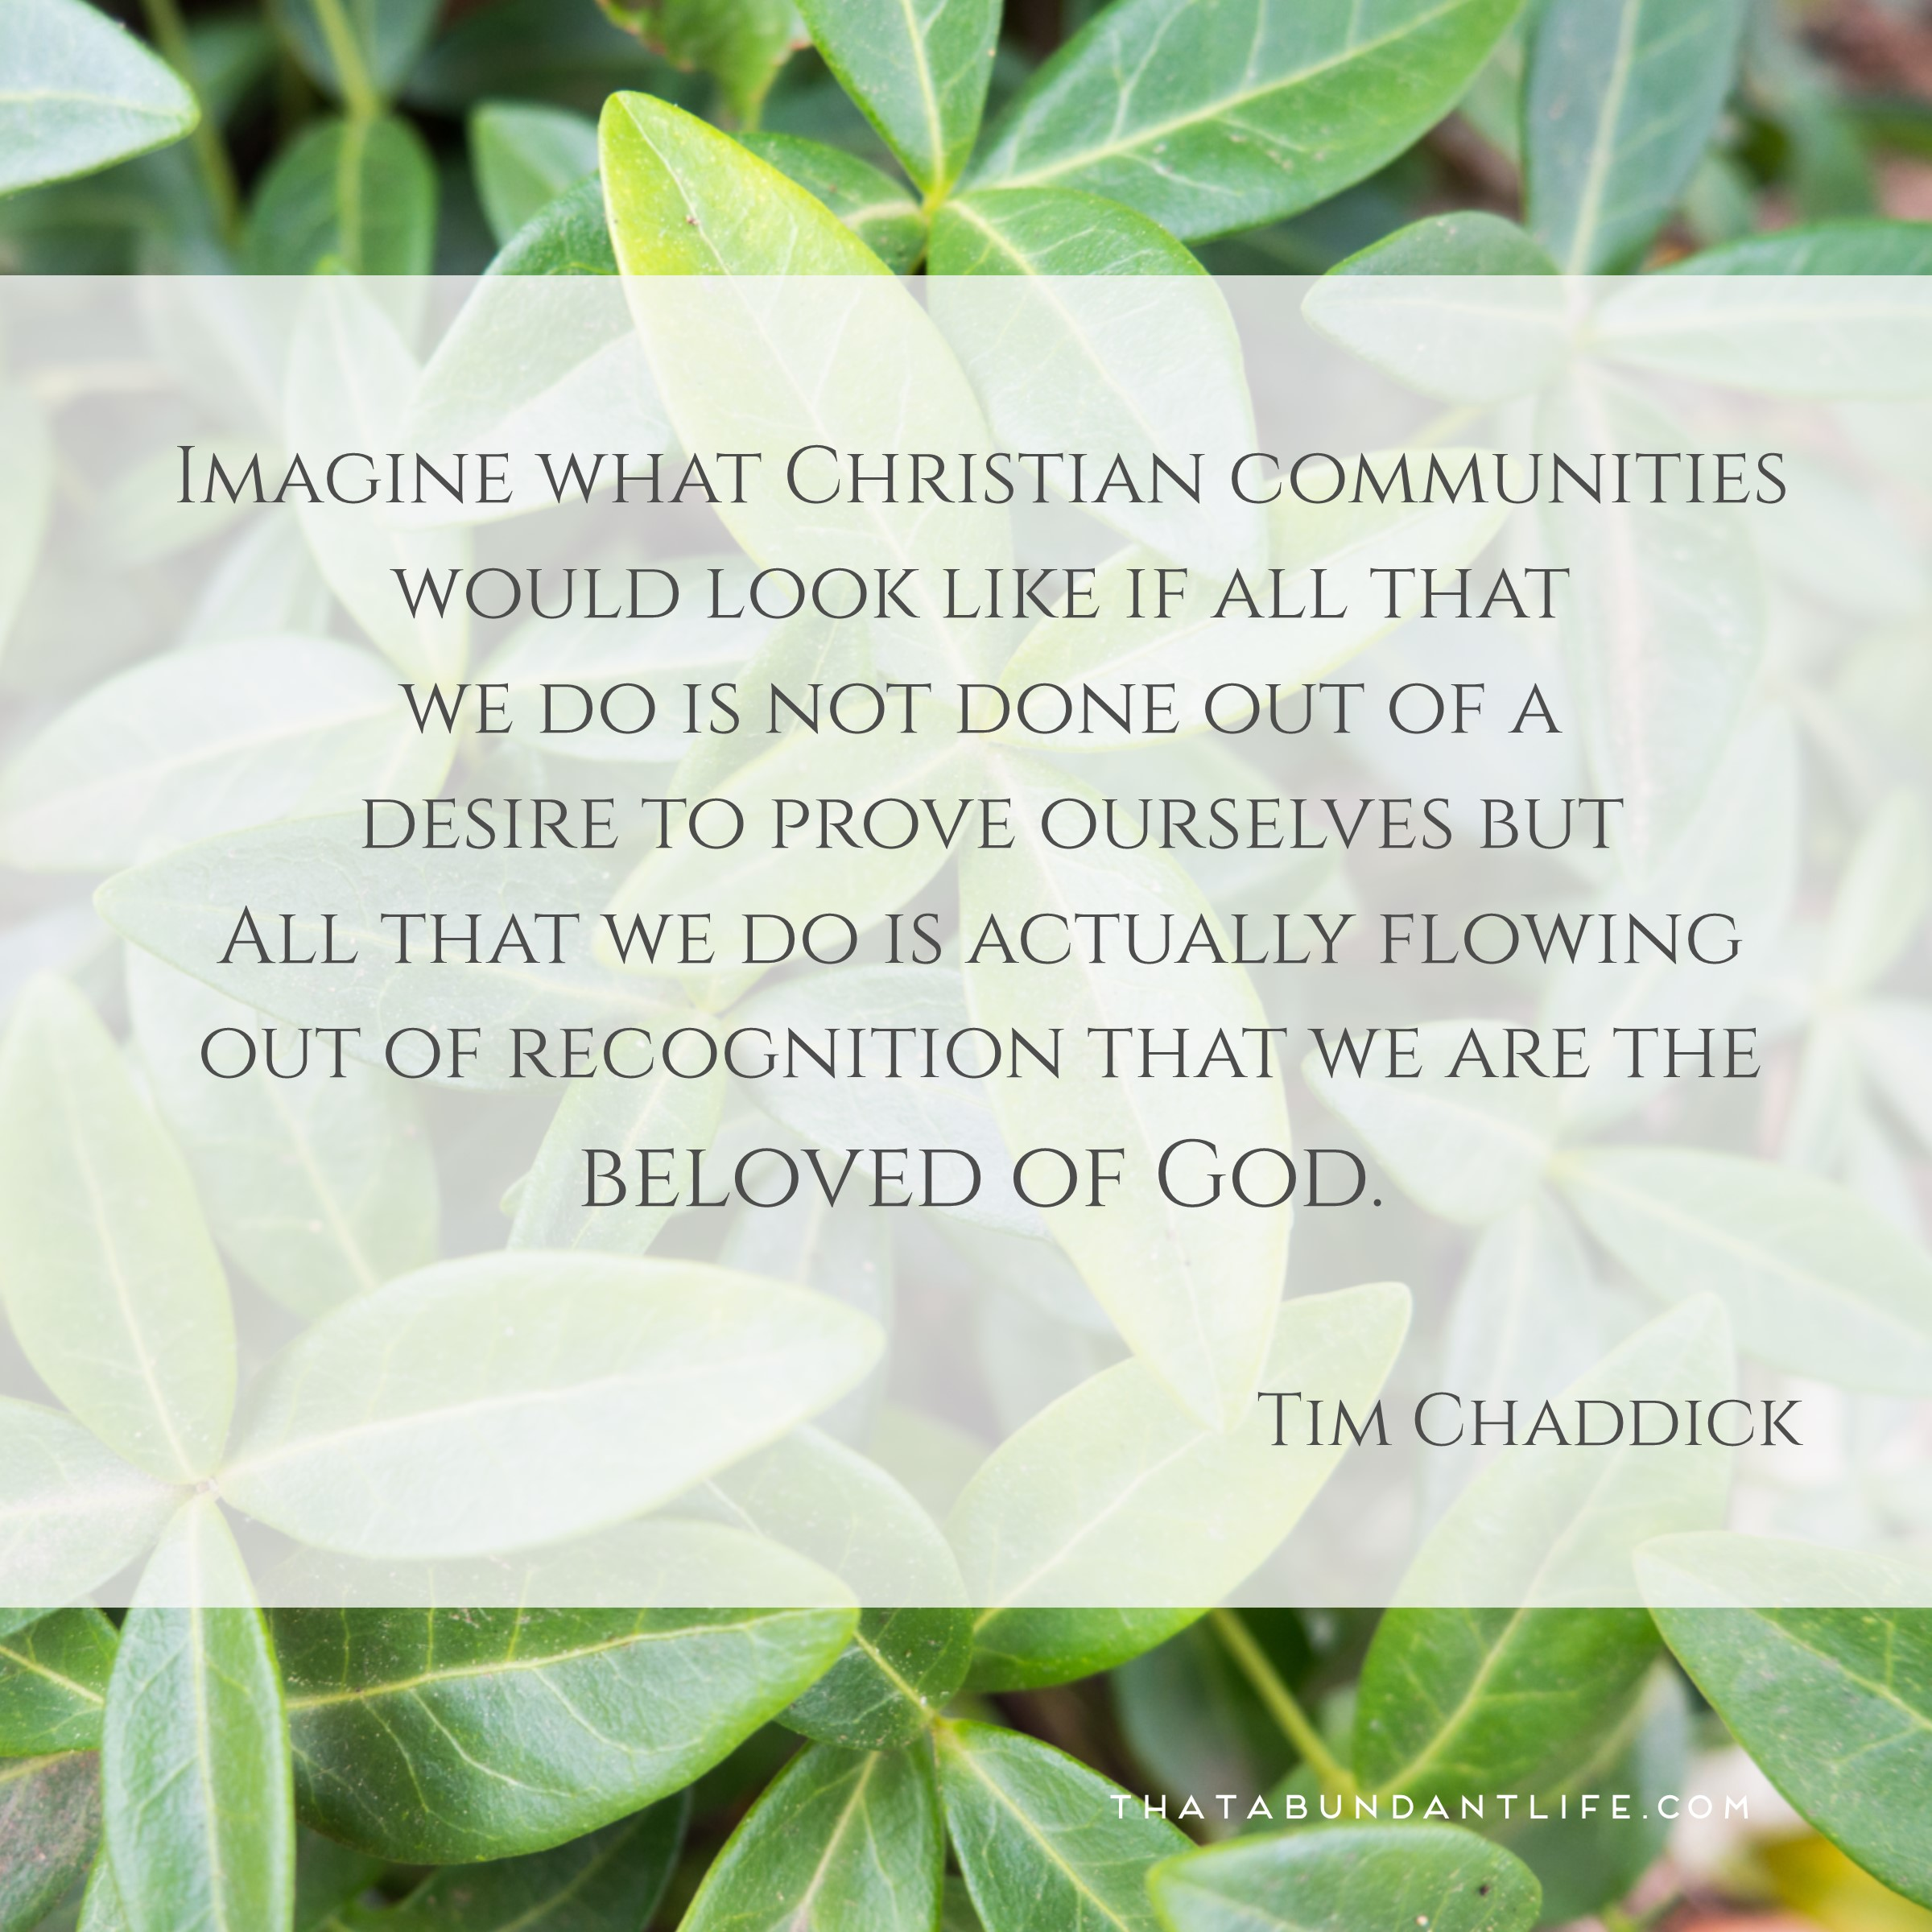 Tim Chaddick Quote 07292015.jpg